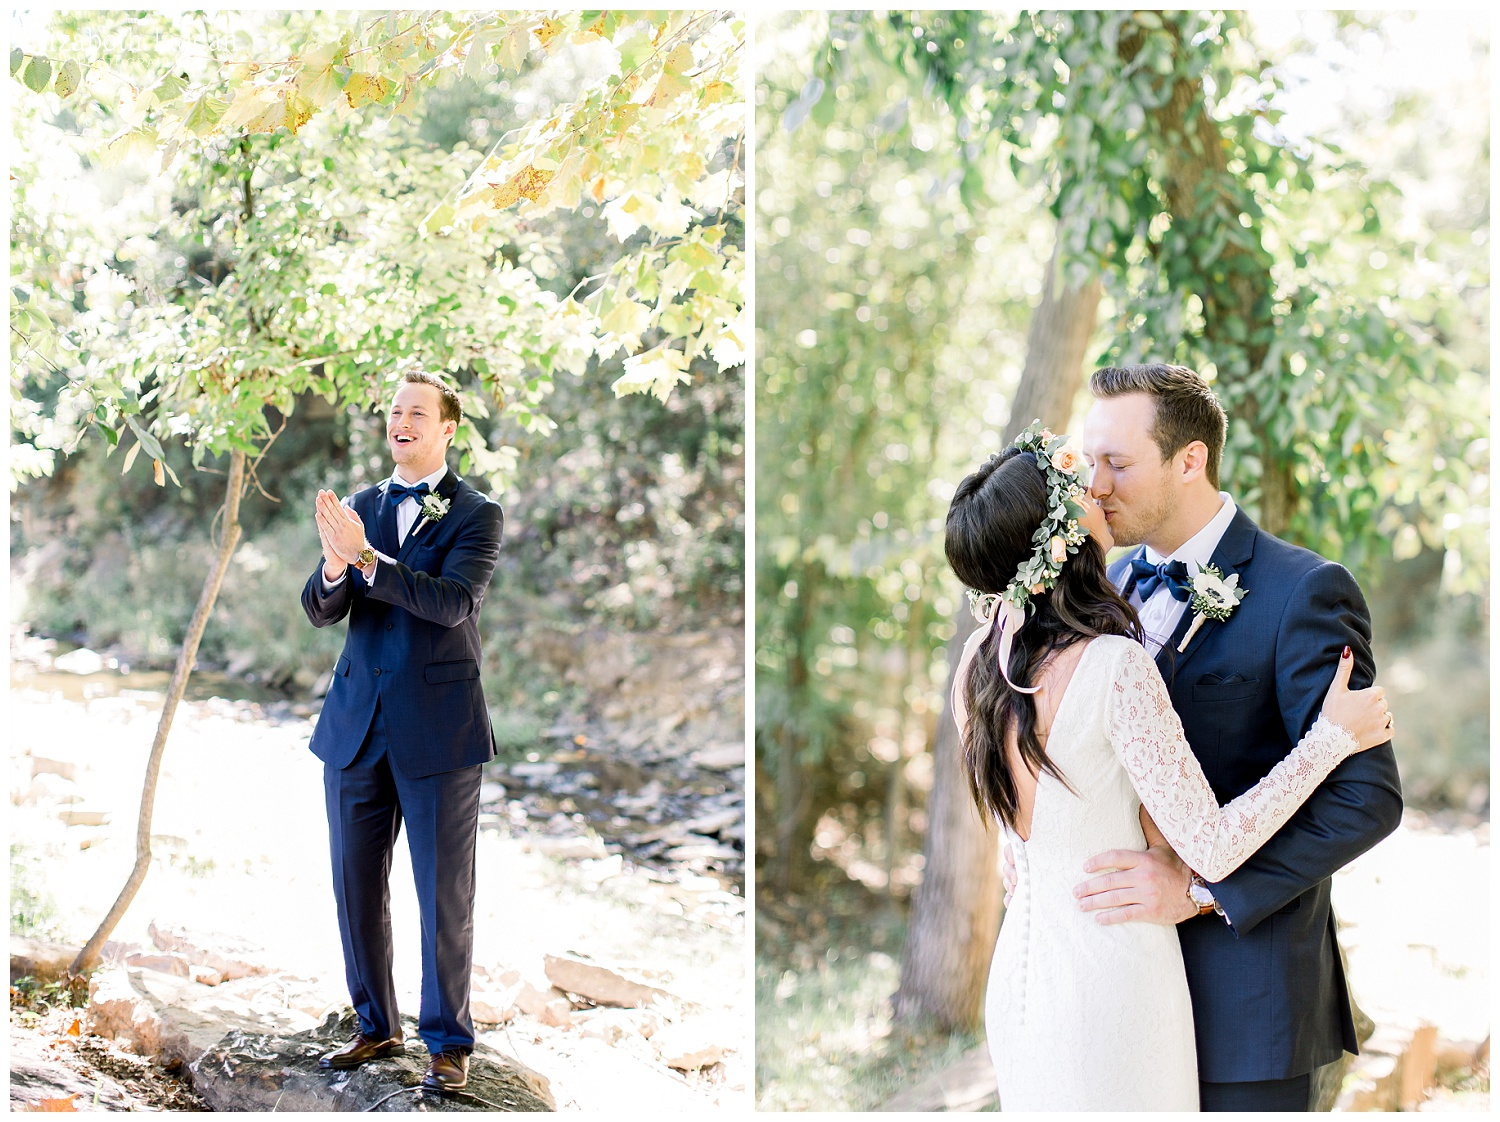 Willow-Creek-Blush-and-Blues-Outdoor-Wedding-Photography-S+Z2018-elizabeth-ladean-photography-photo_0526.jpg